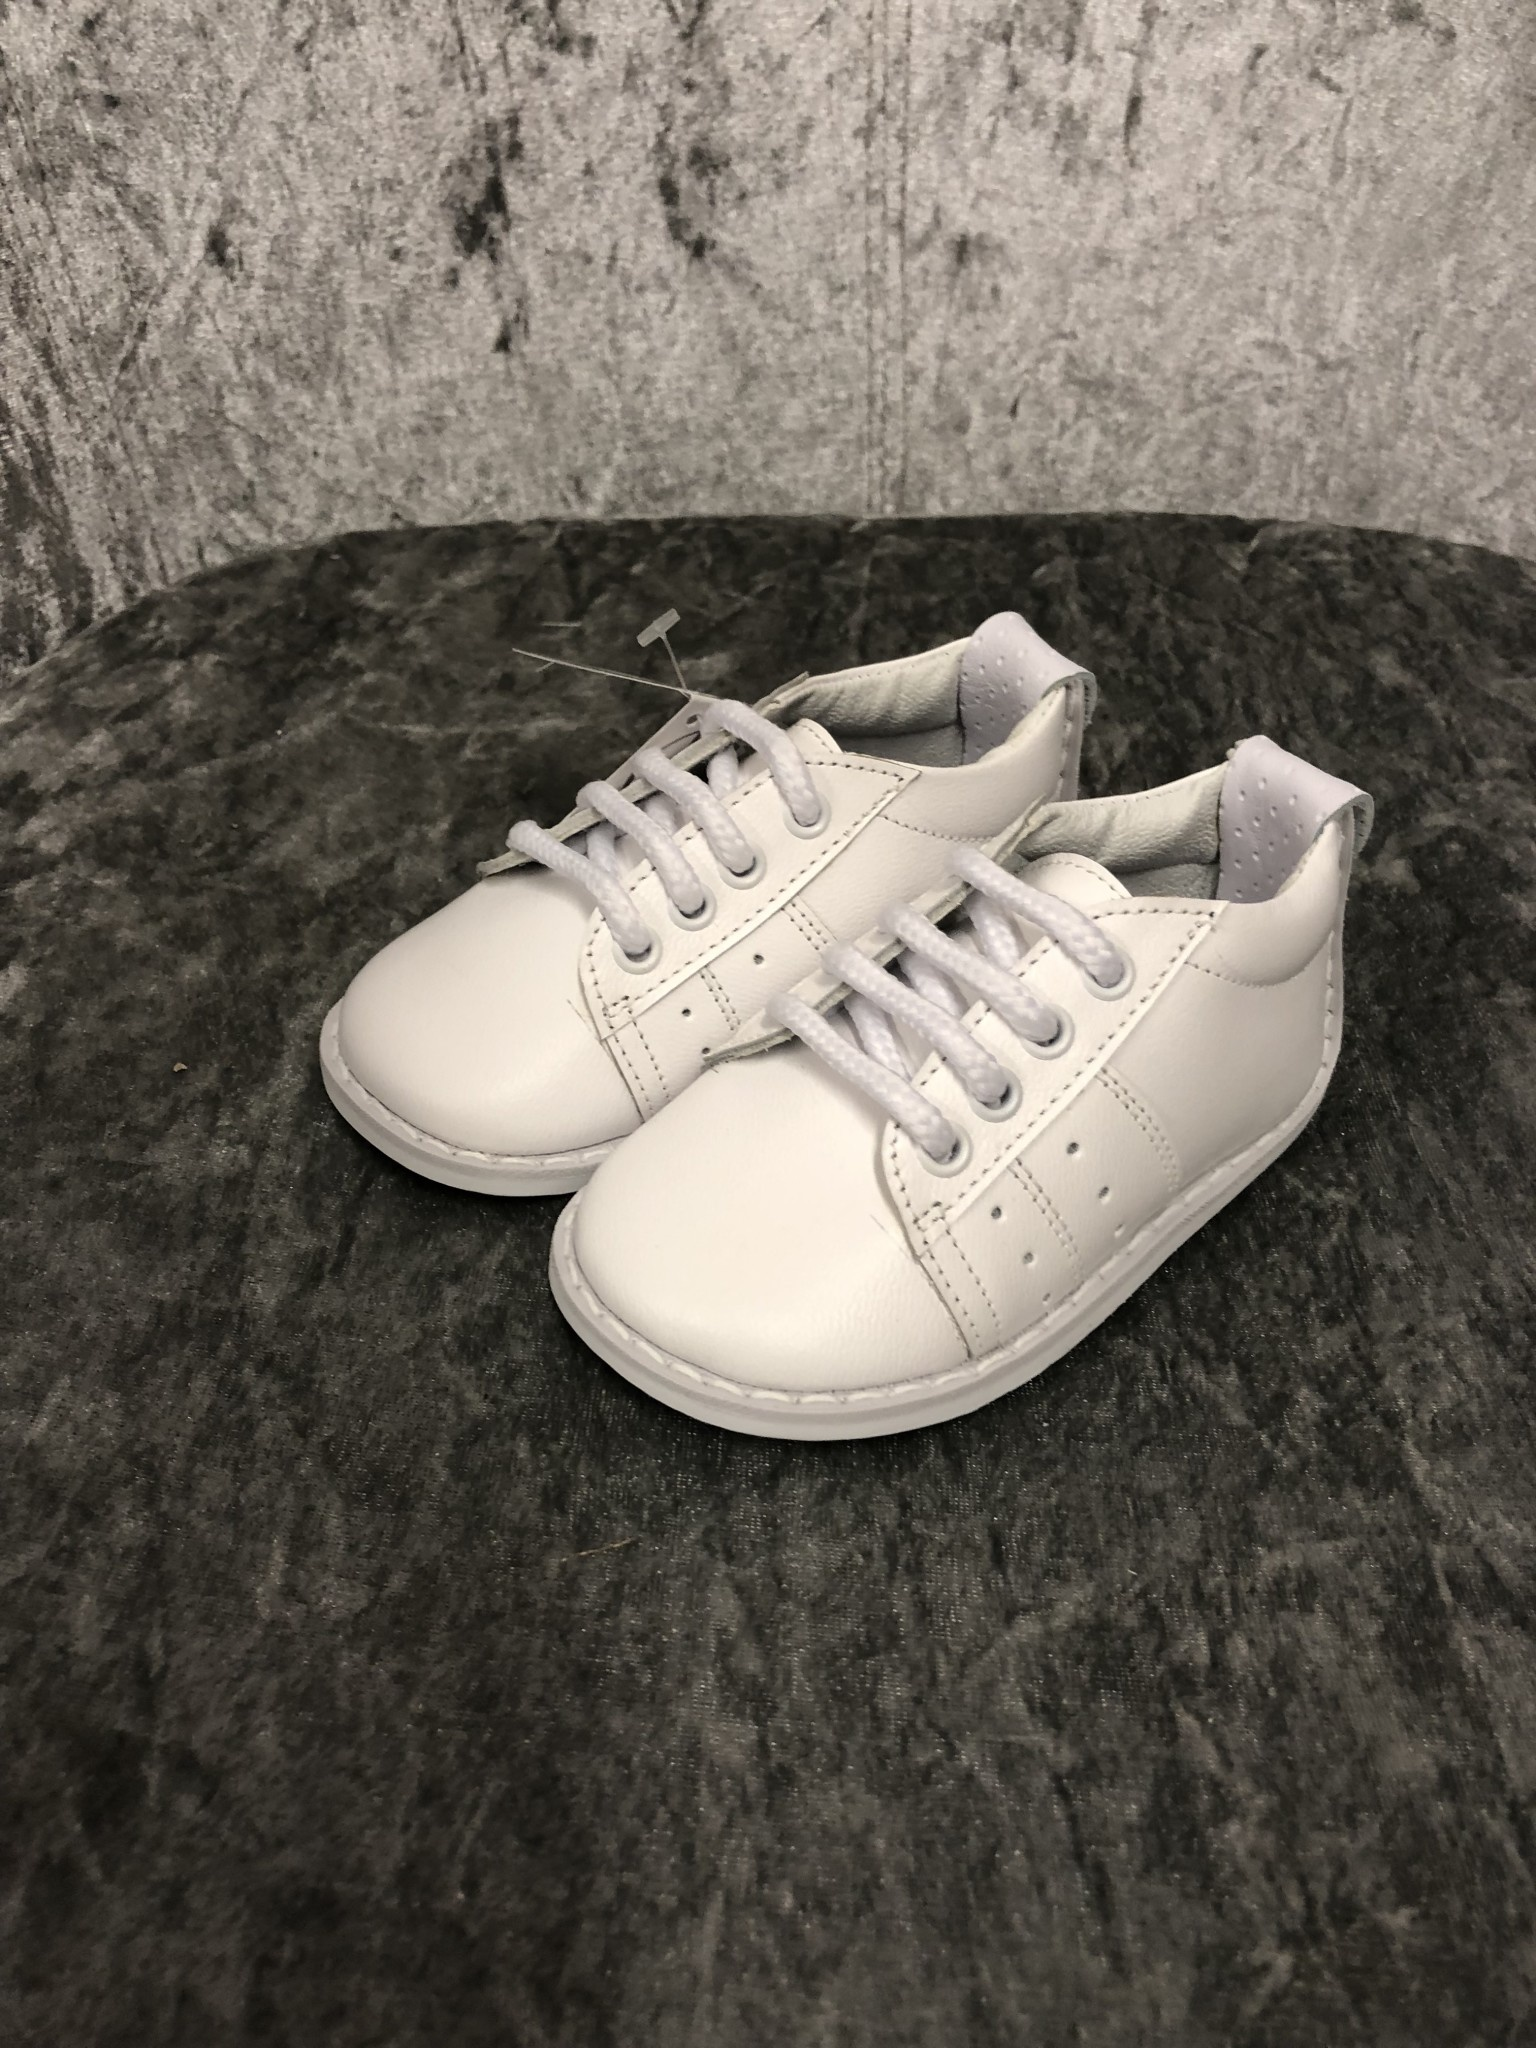 Pex Pex Reed white boys shoe with laces